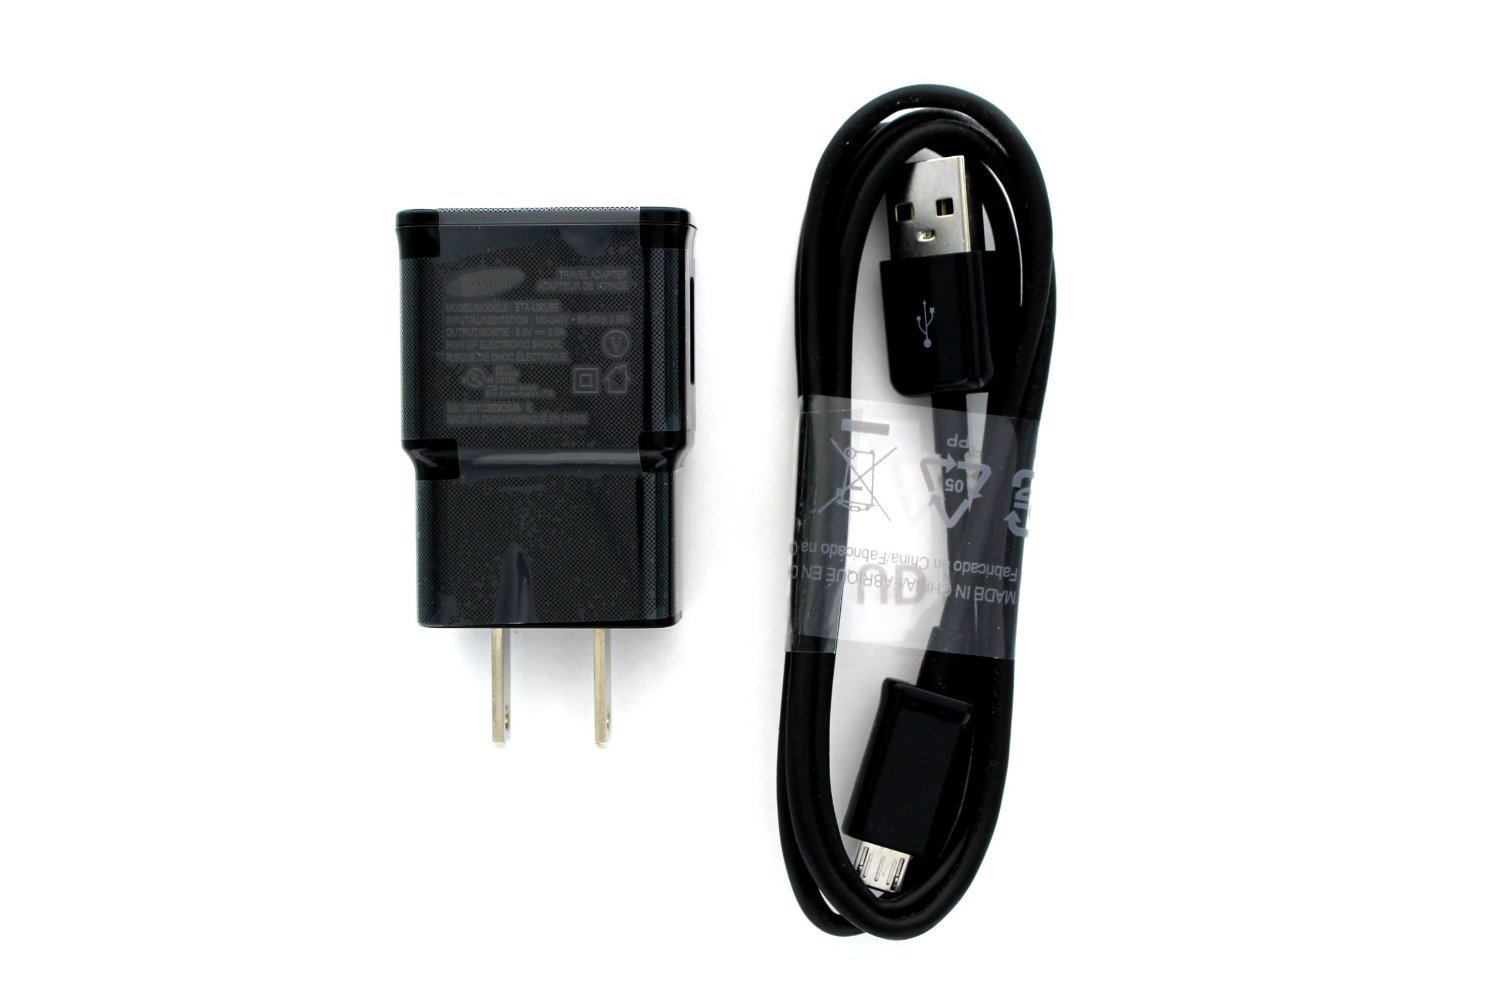 Cargador Original Samsung S4, S3, S2, Note + Cable Usb